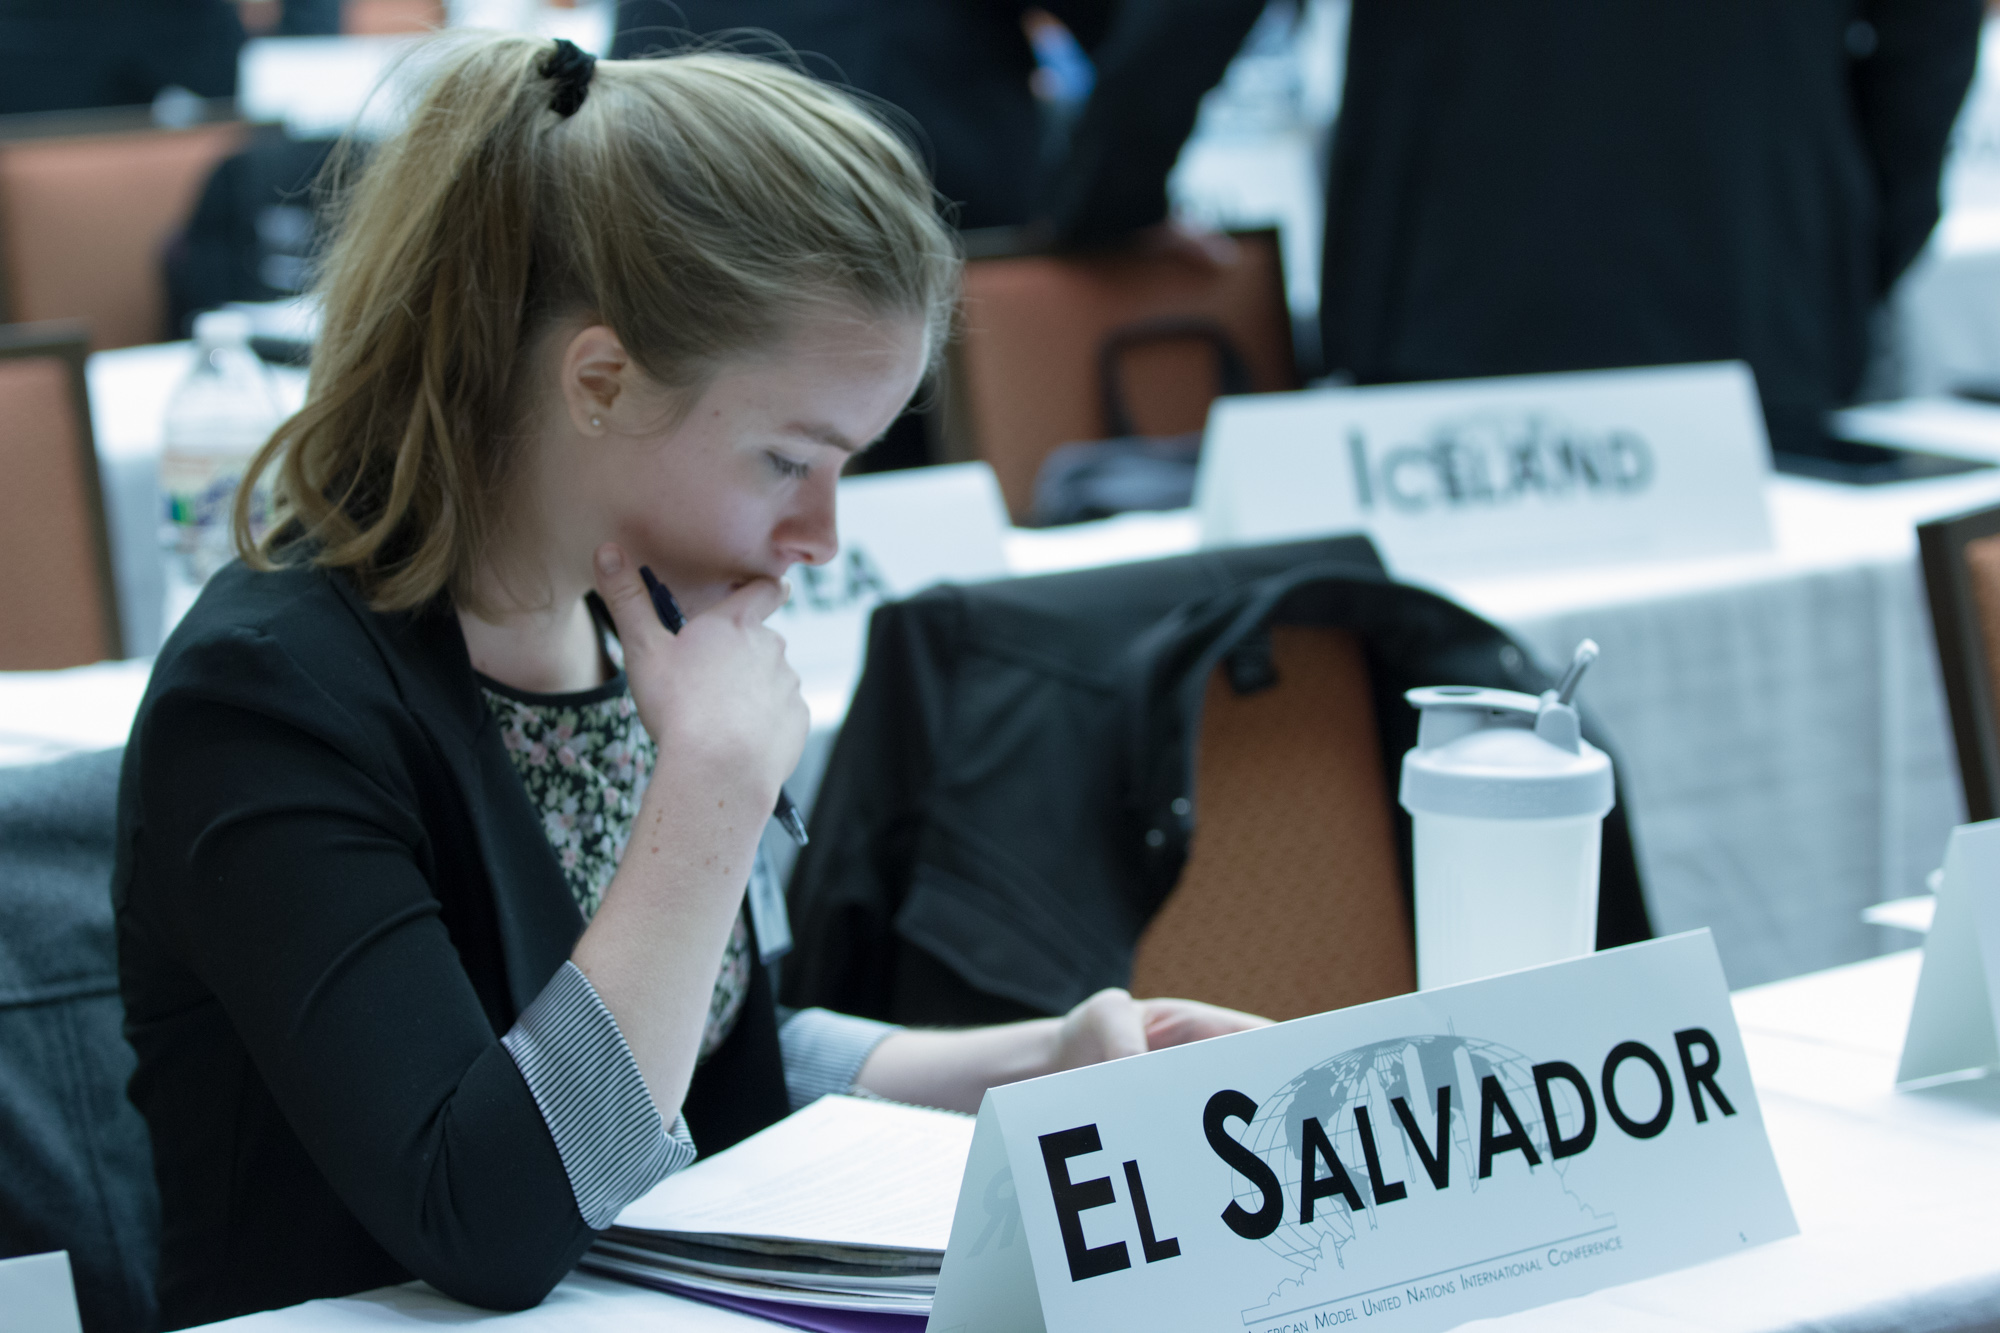 Representatives at American Model United Nations - AMUN's UN News Update